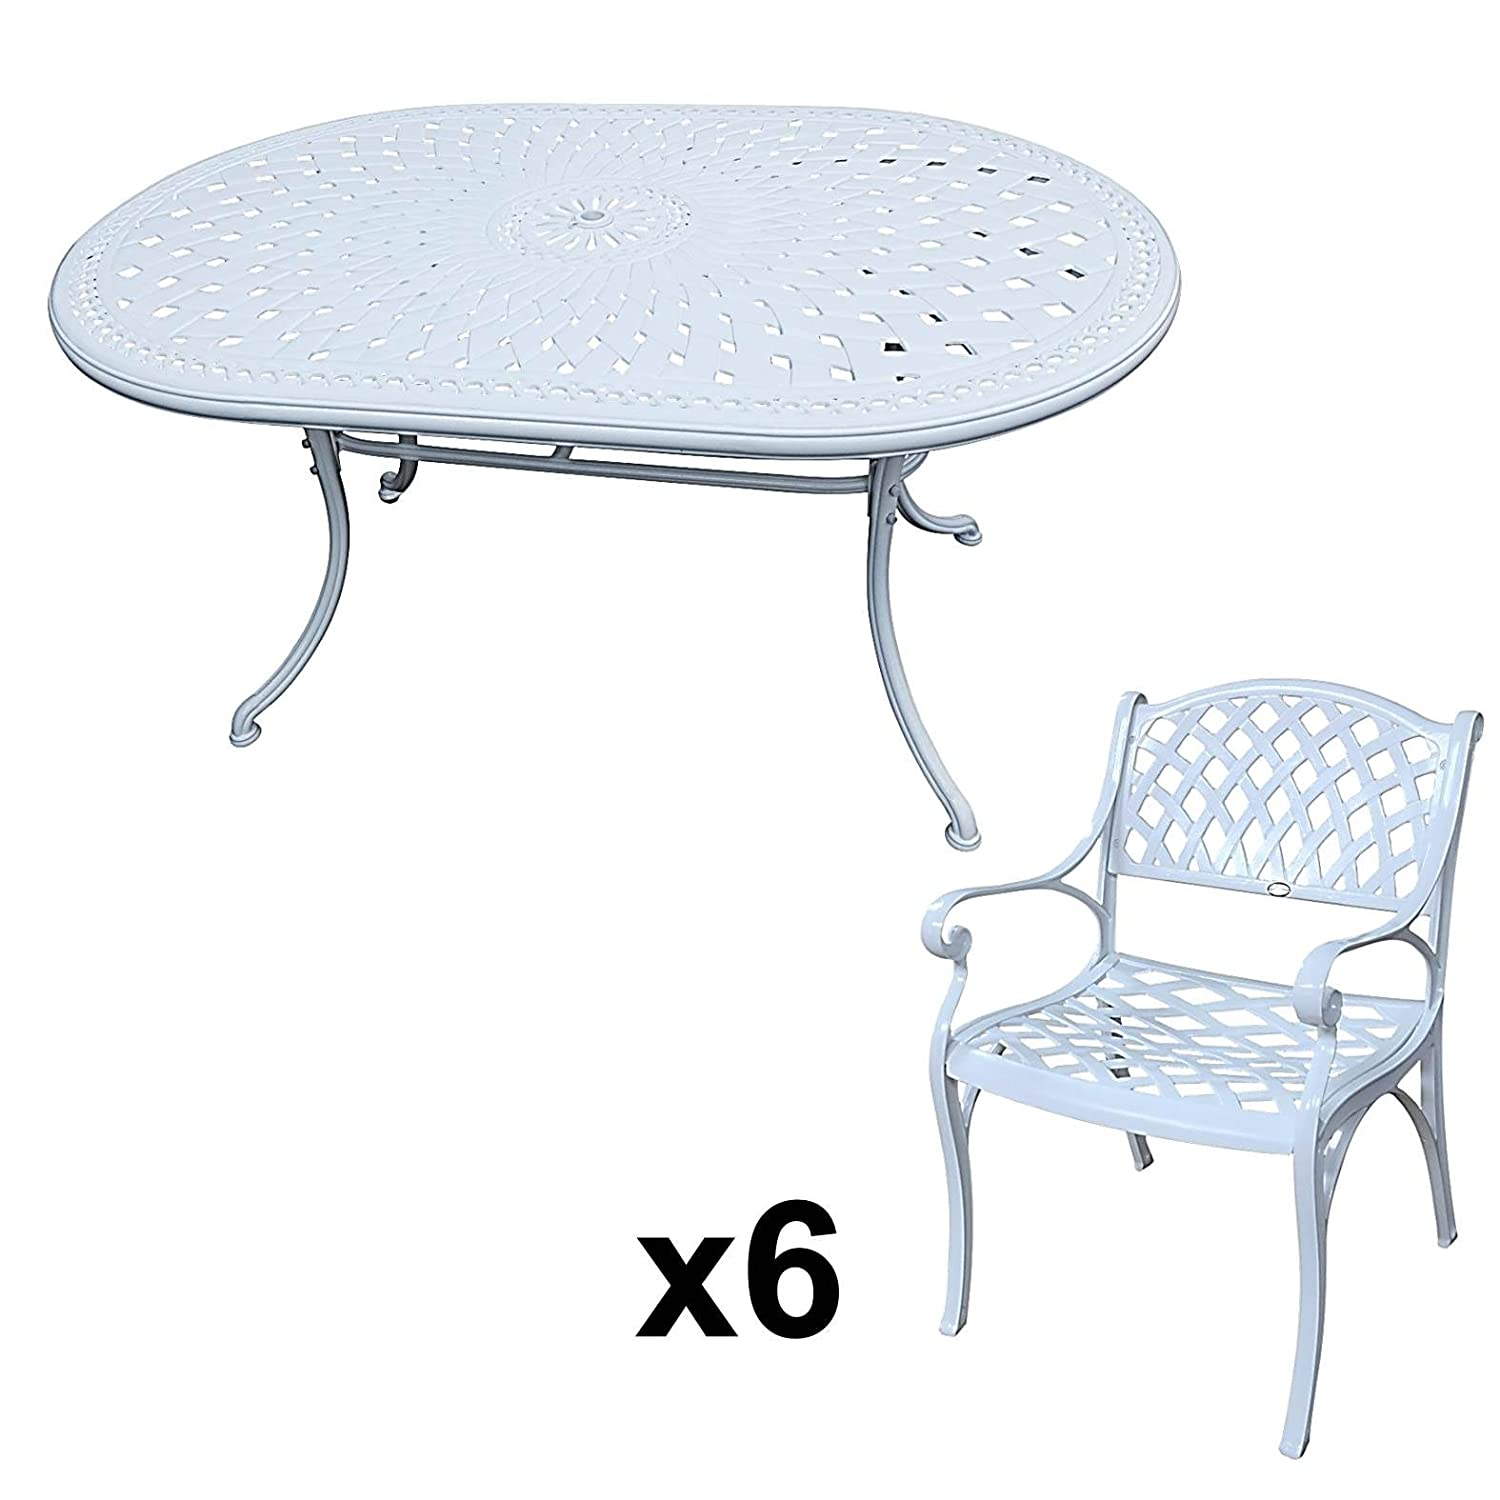 lazy susan june 150 x 95 cm ovaler gartentisch mit 6 st hlen gartenm bel set aus metall. Black Bedroom Furniture Sets. Home Design Ideas